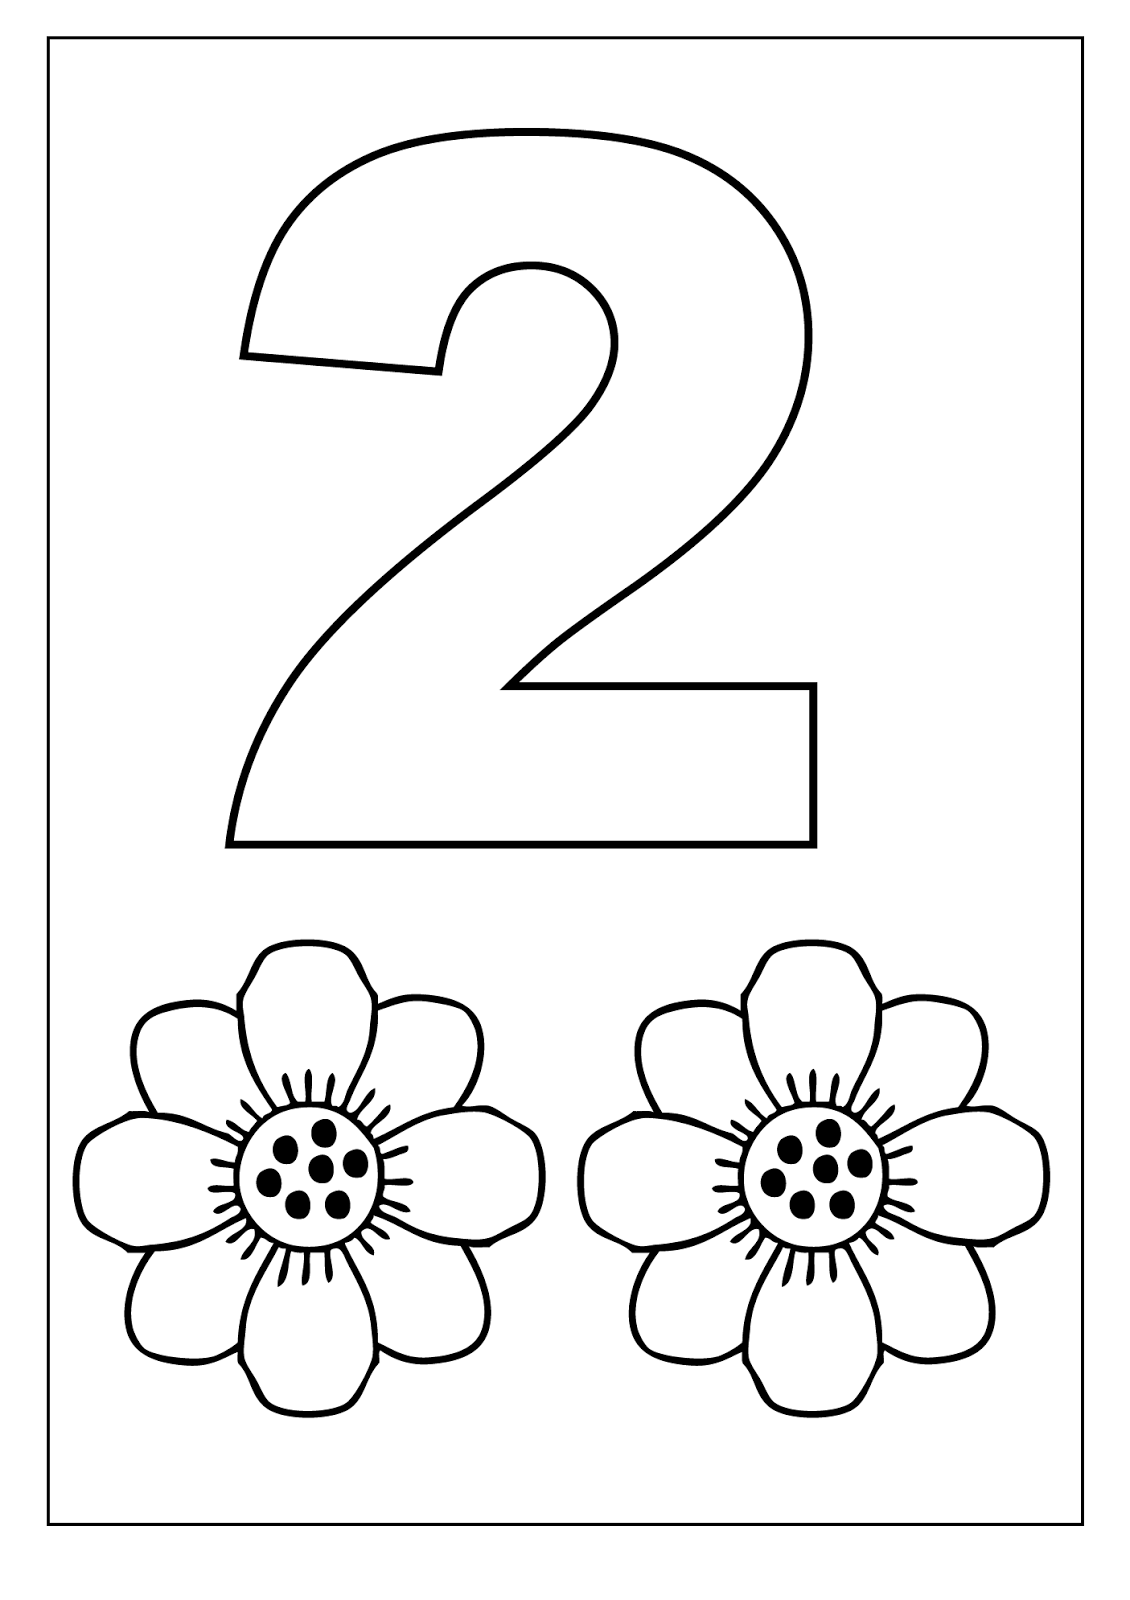 Coloring Pages For 5 Yr Olds Coloring Pages For 5 Year Olds Coloring ...